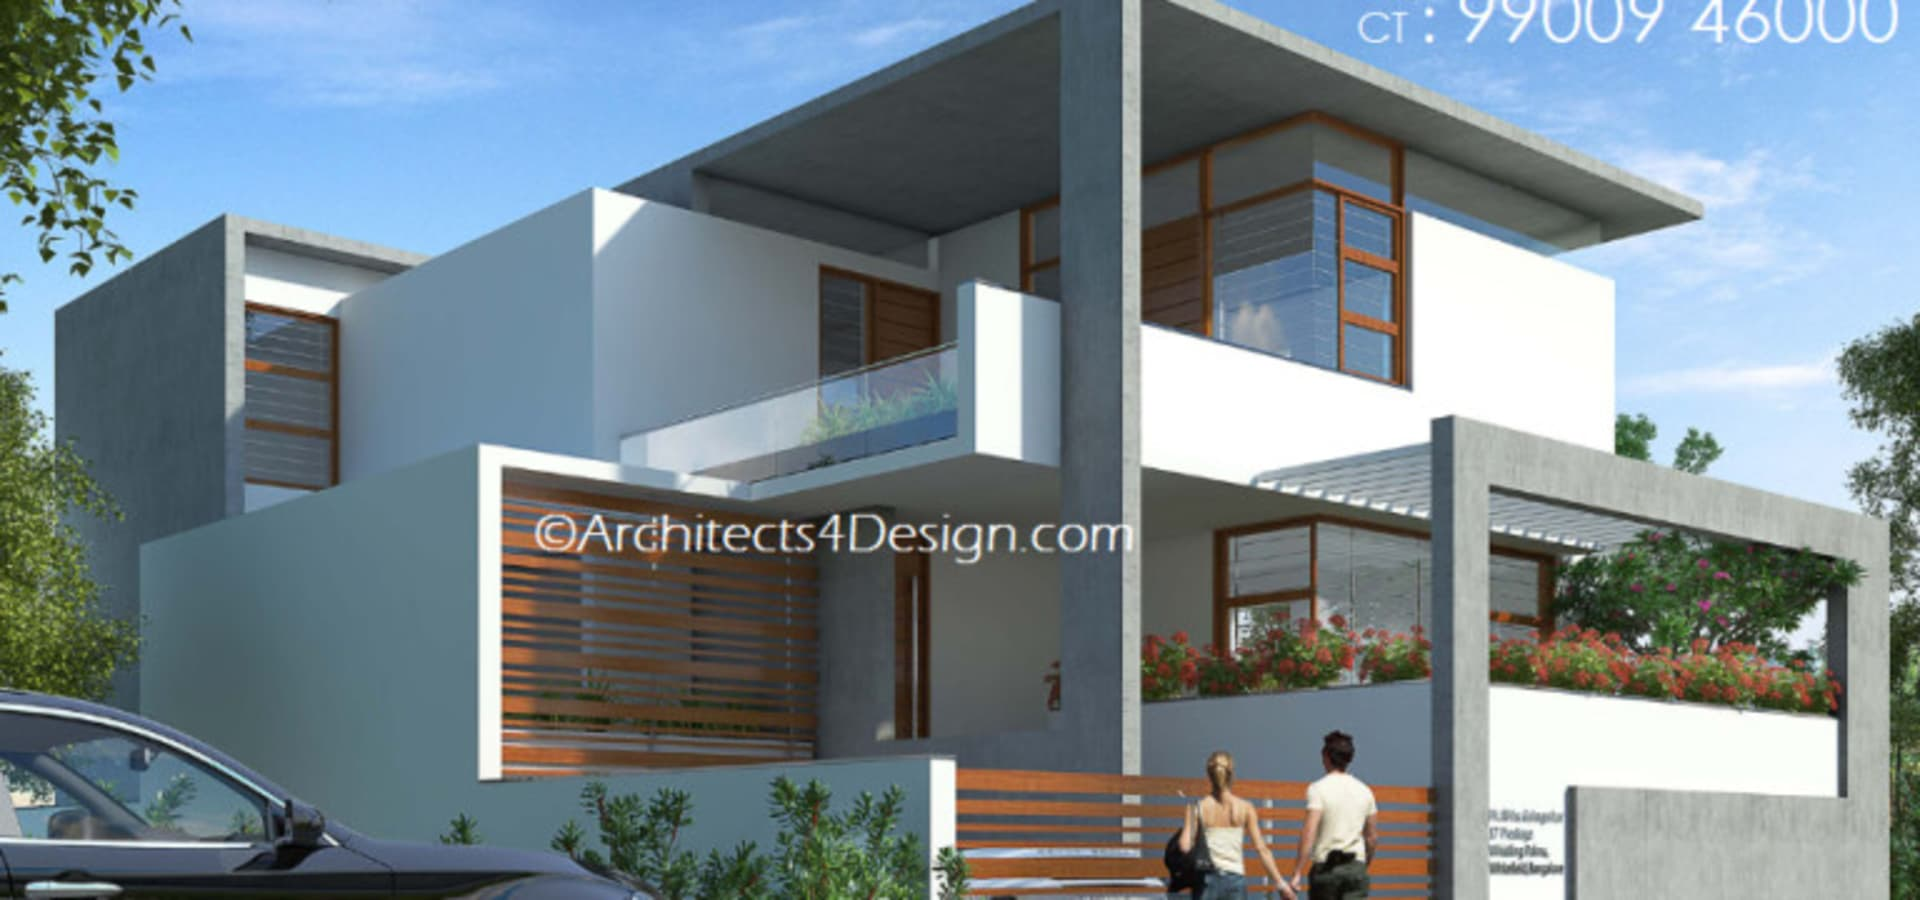 A4 ARCHITECTS IN BANGALORE